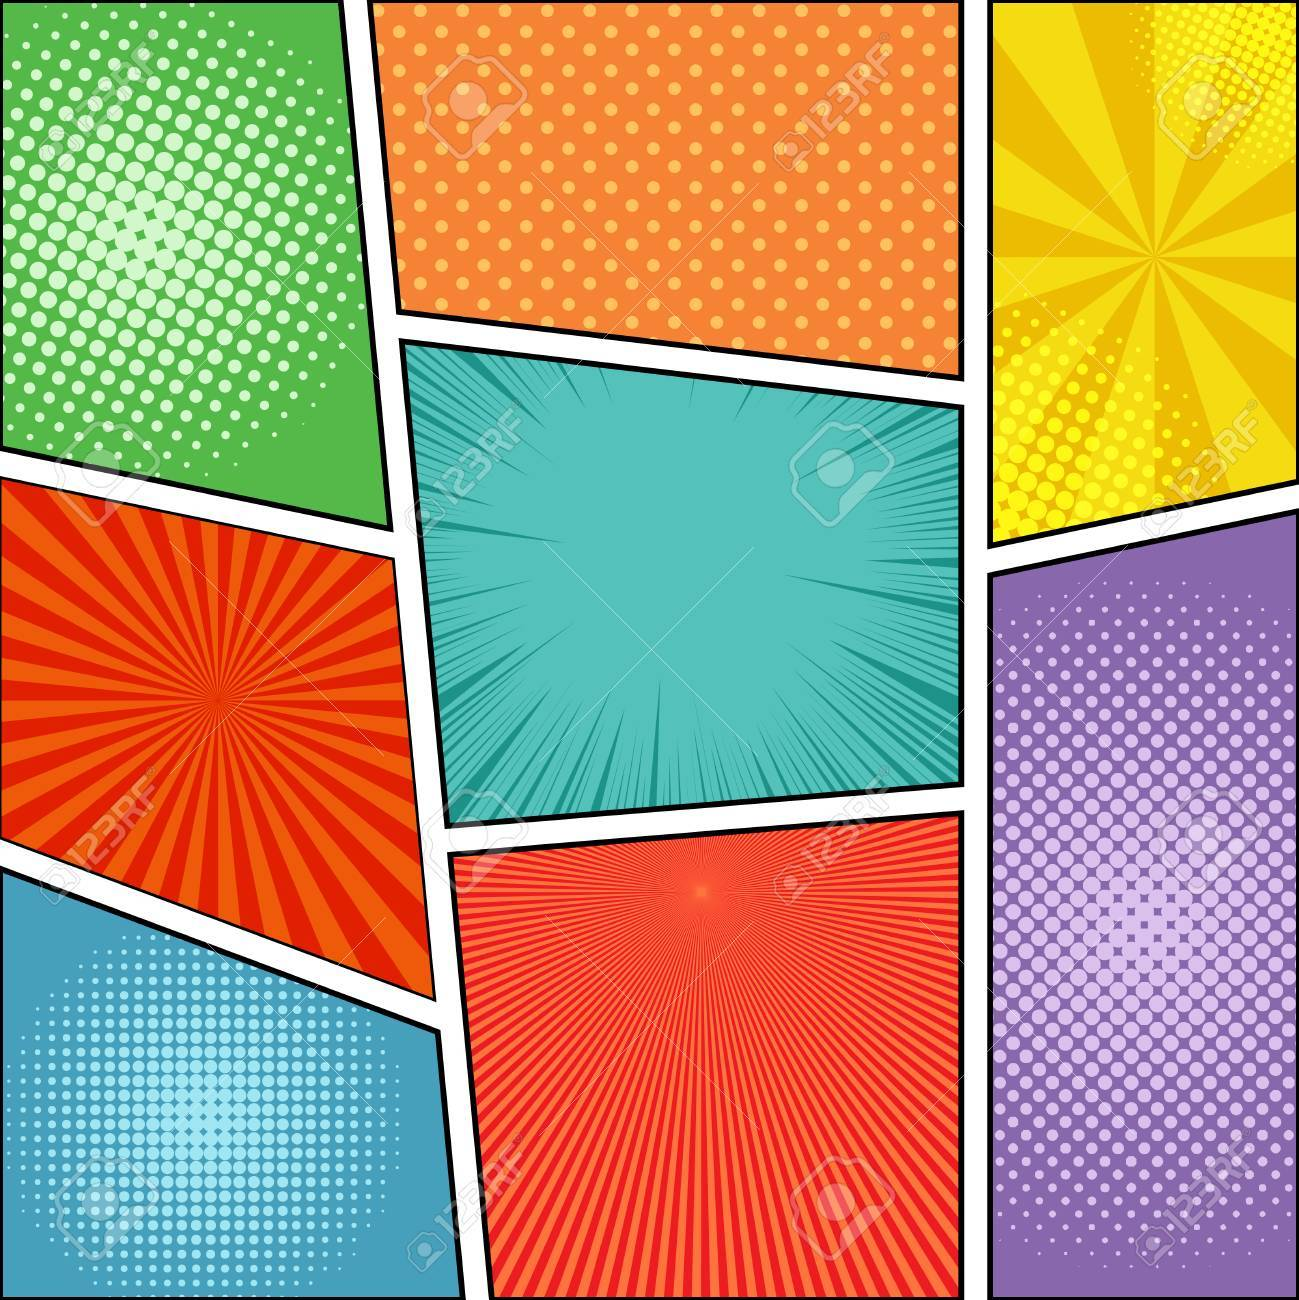 Comic Book Page Background With Rays Radial Dotted And Halftone Effects In Different Colors